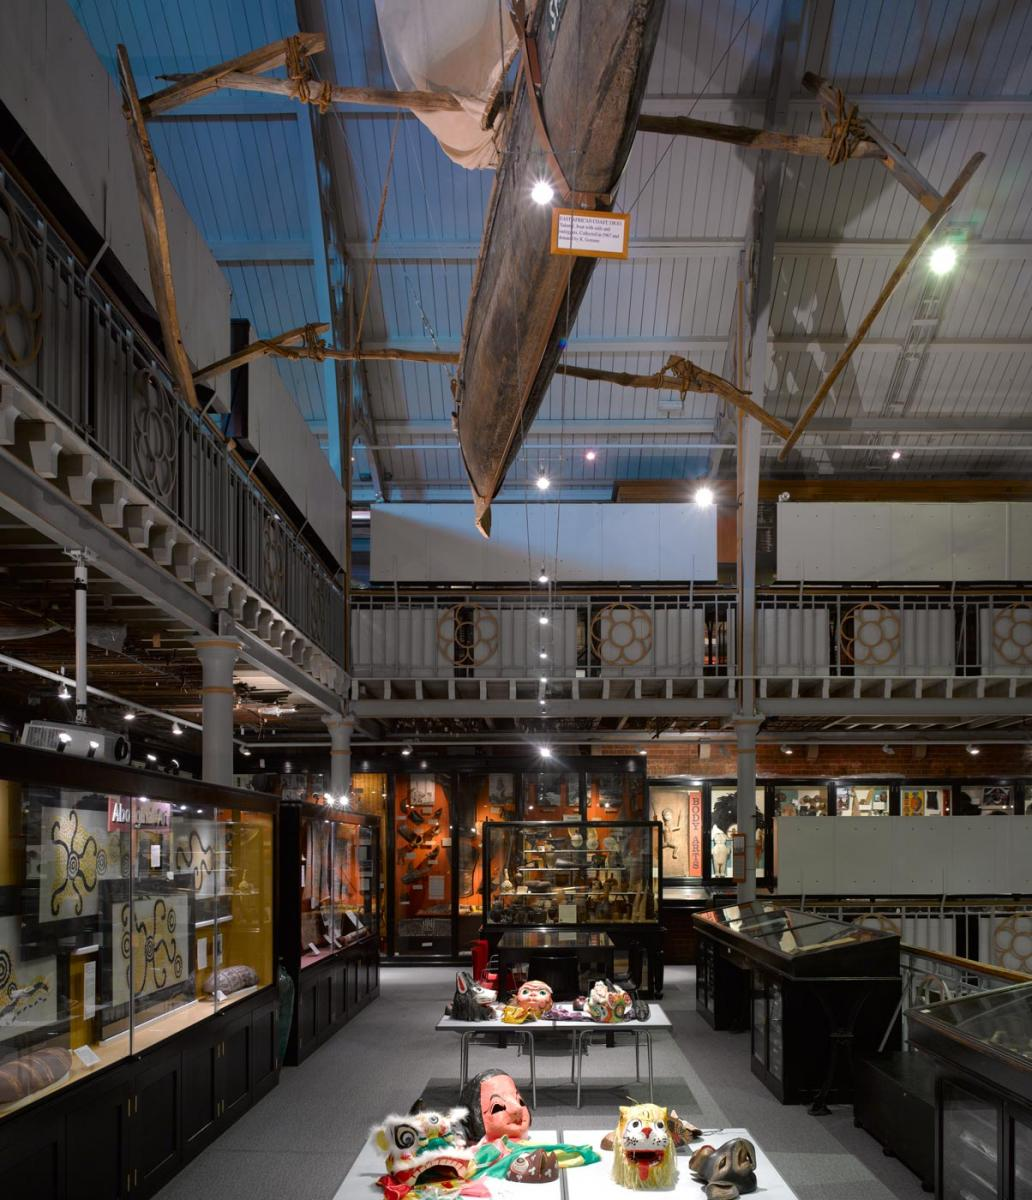 Pitt Rivers Museum Main Entrance and Refurbishment - Interior view